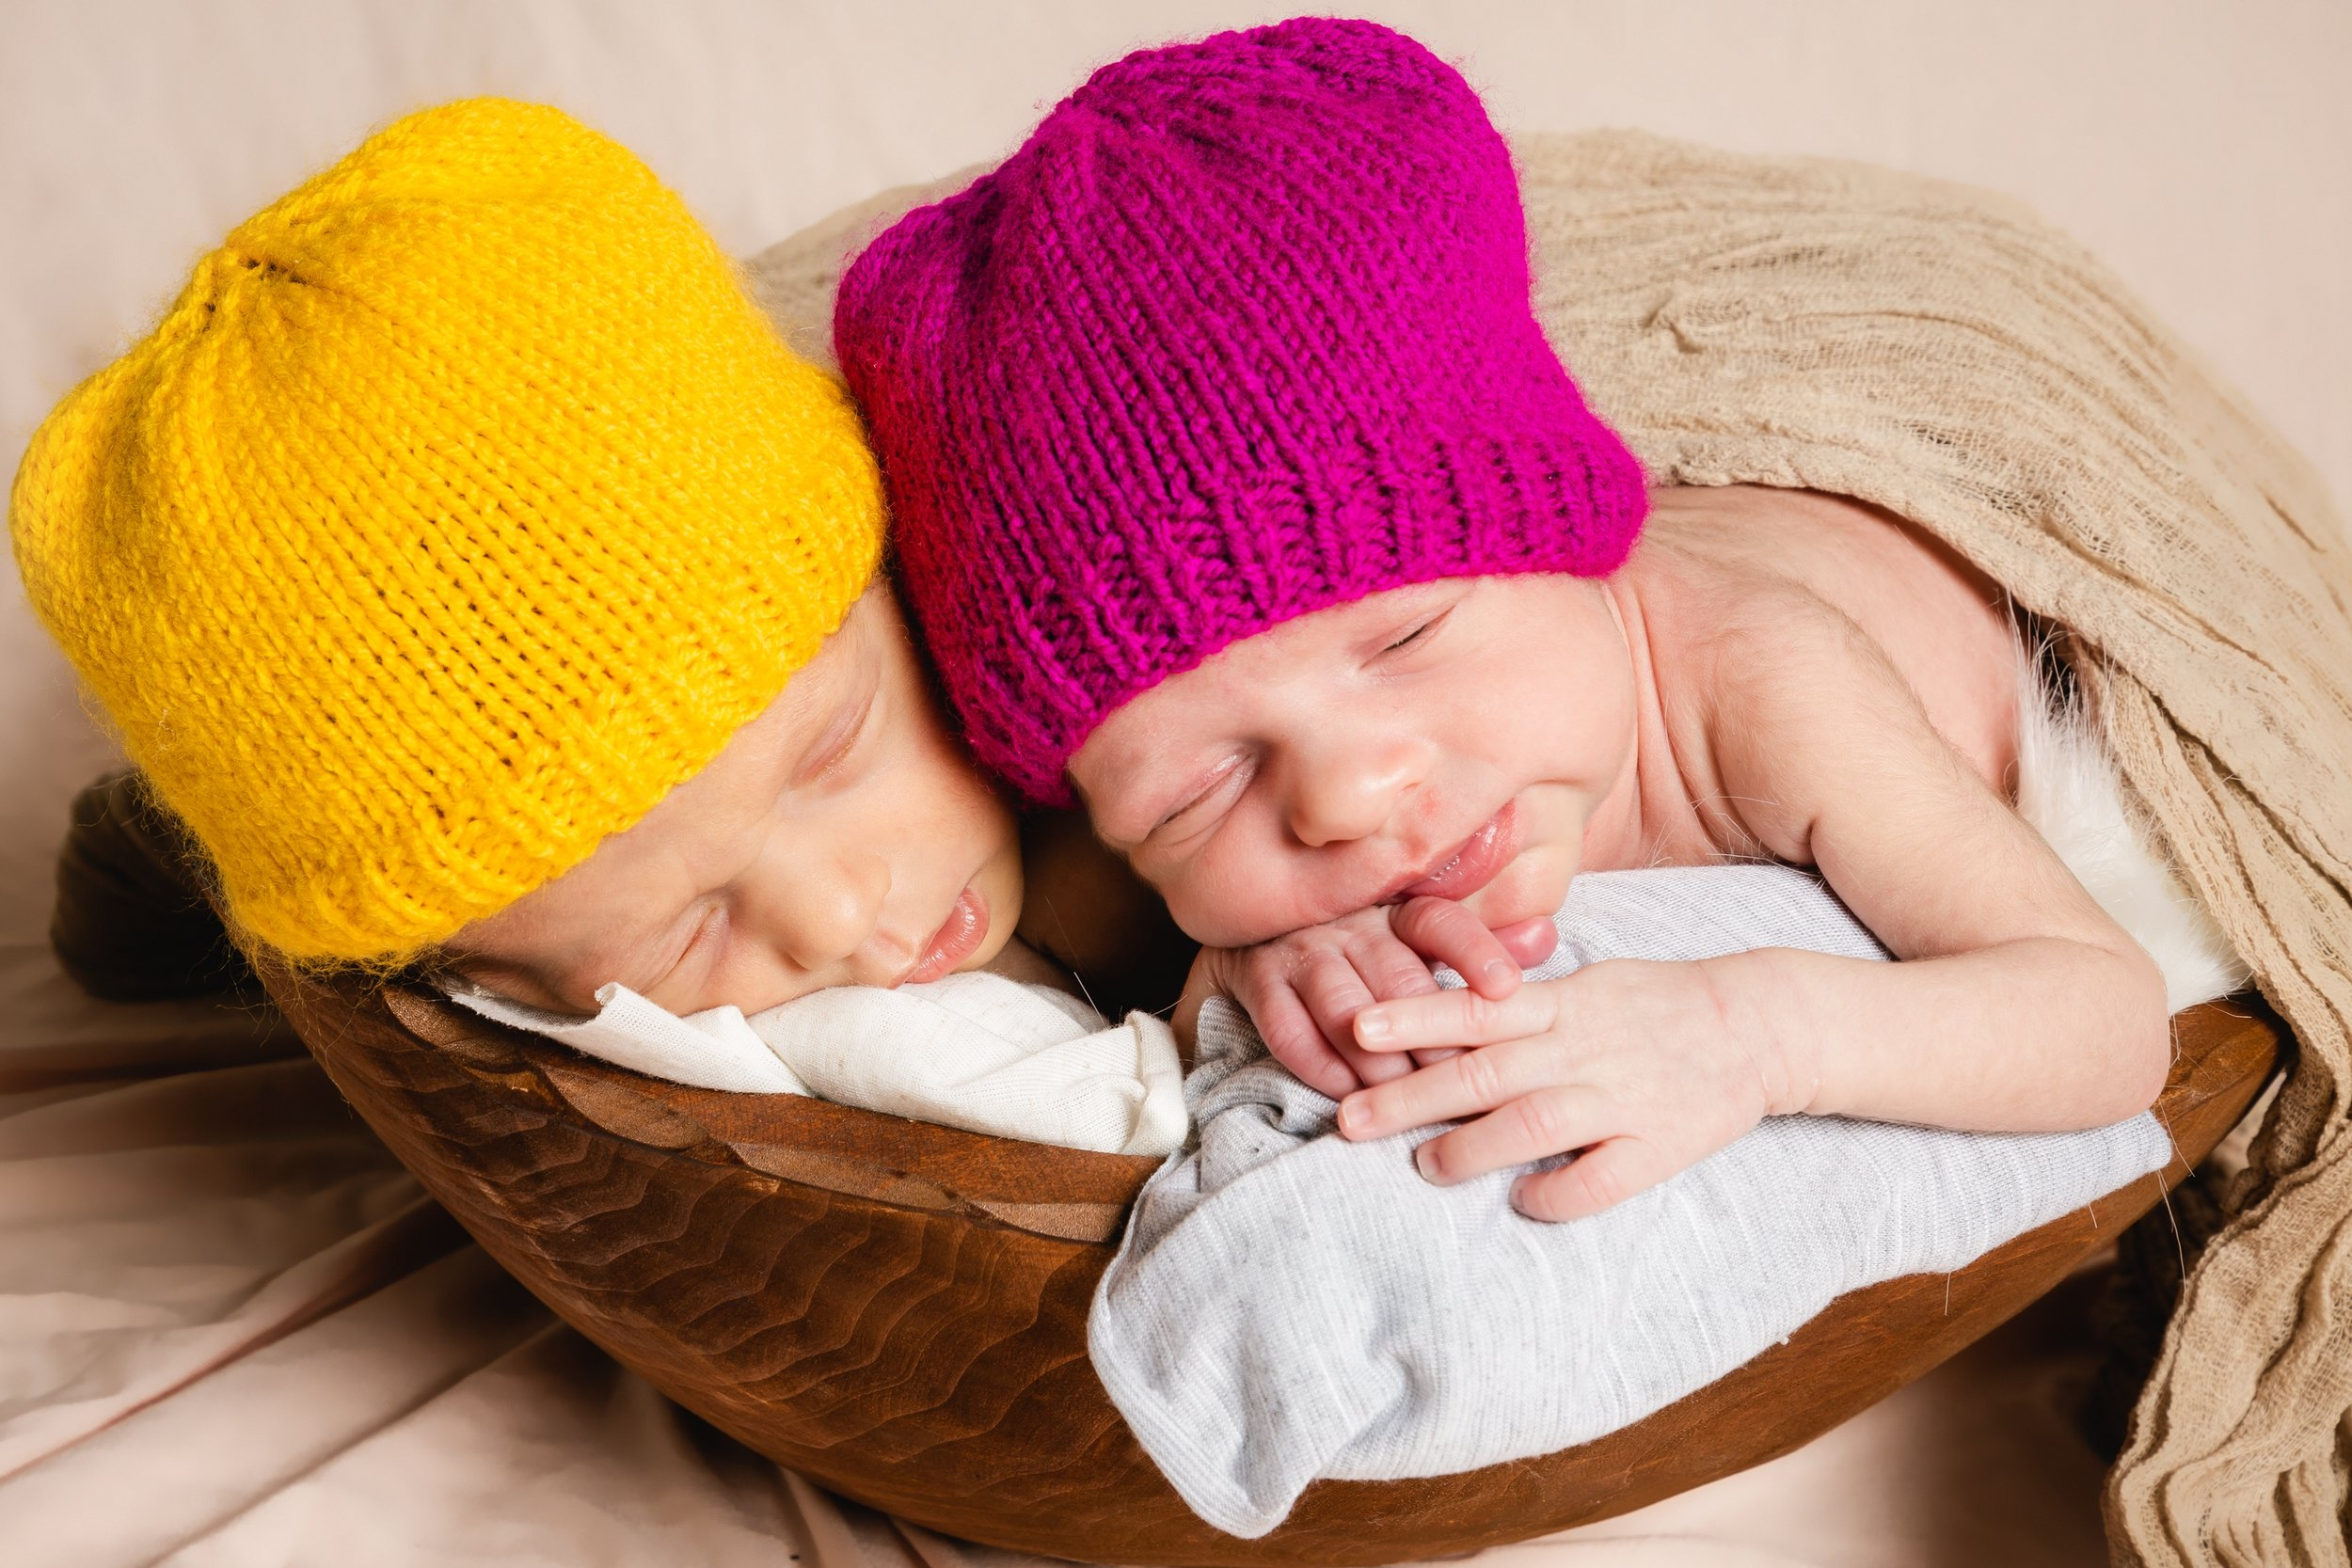 zigzag-photography-leicester-newborn-baby-family-photographer-photography-twins-hats-props-idea-pose